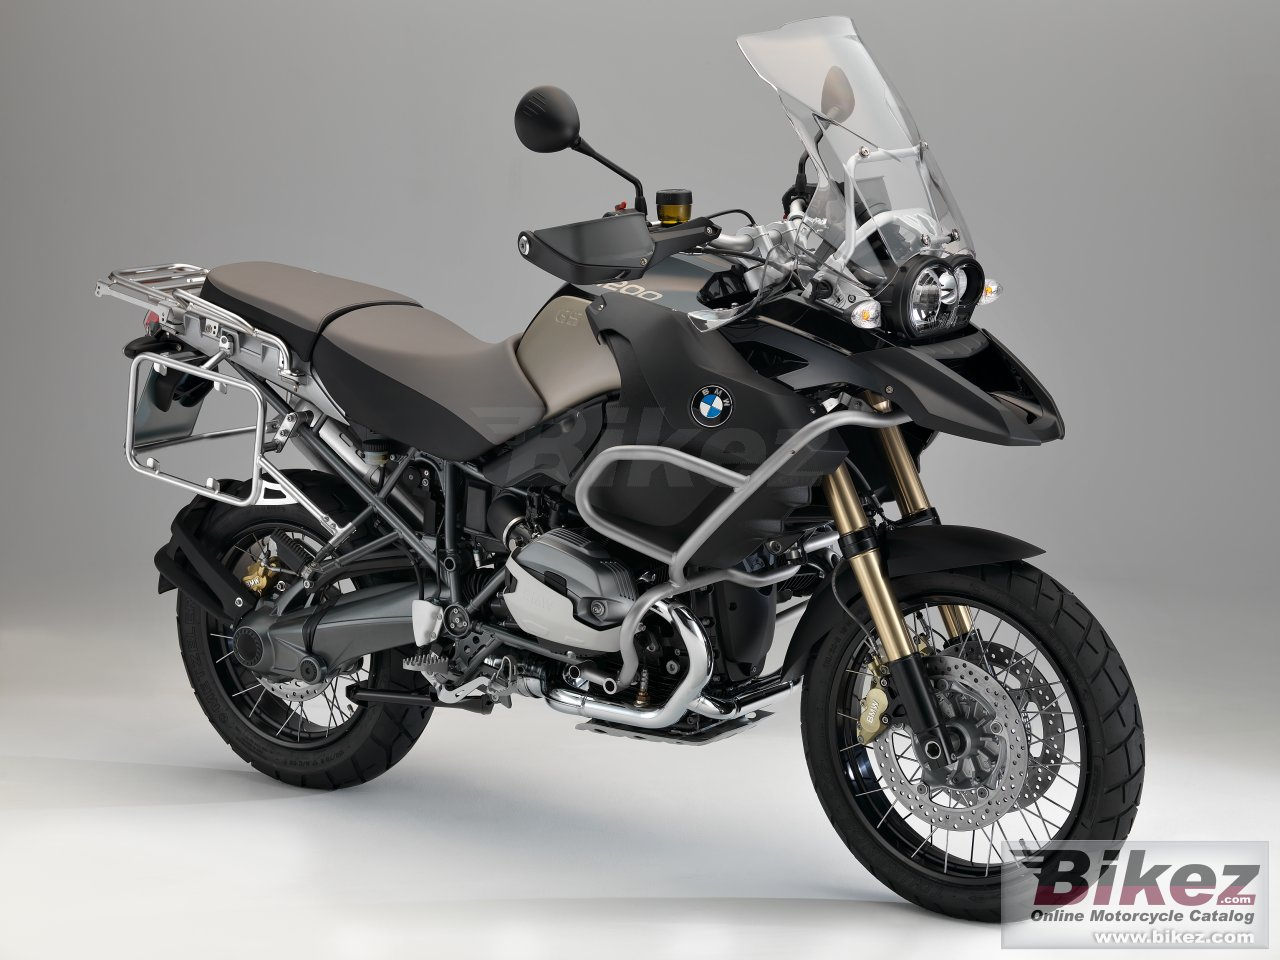 Big BMW r 1200 gs adventure picture and wallpaper from Bikez.com